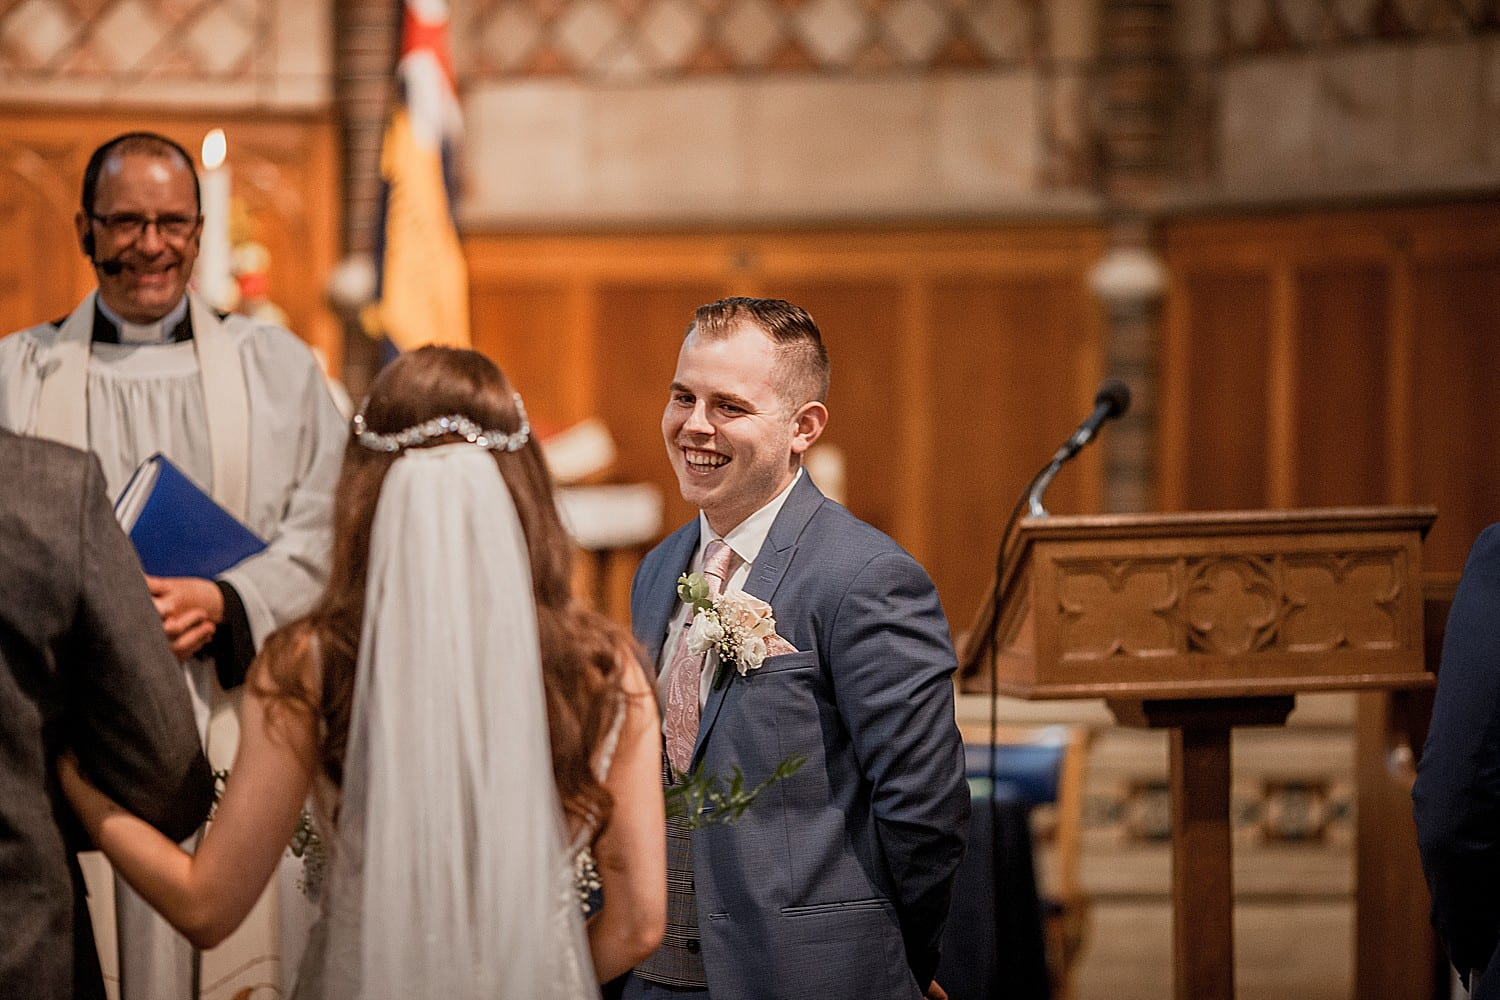 Groom sees his bride at Staffordshire wedding